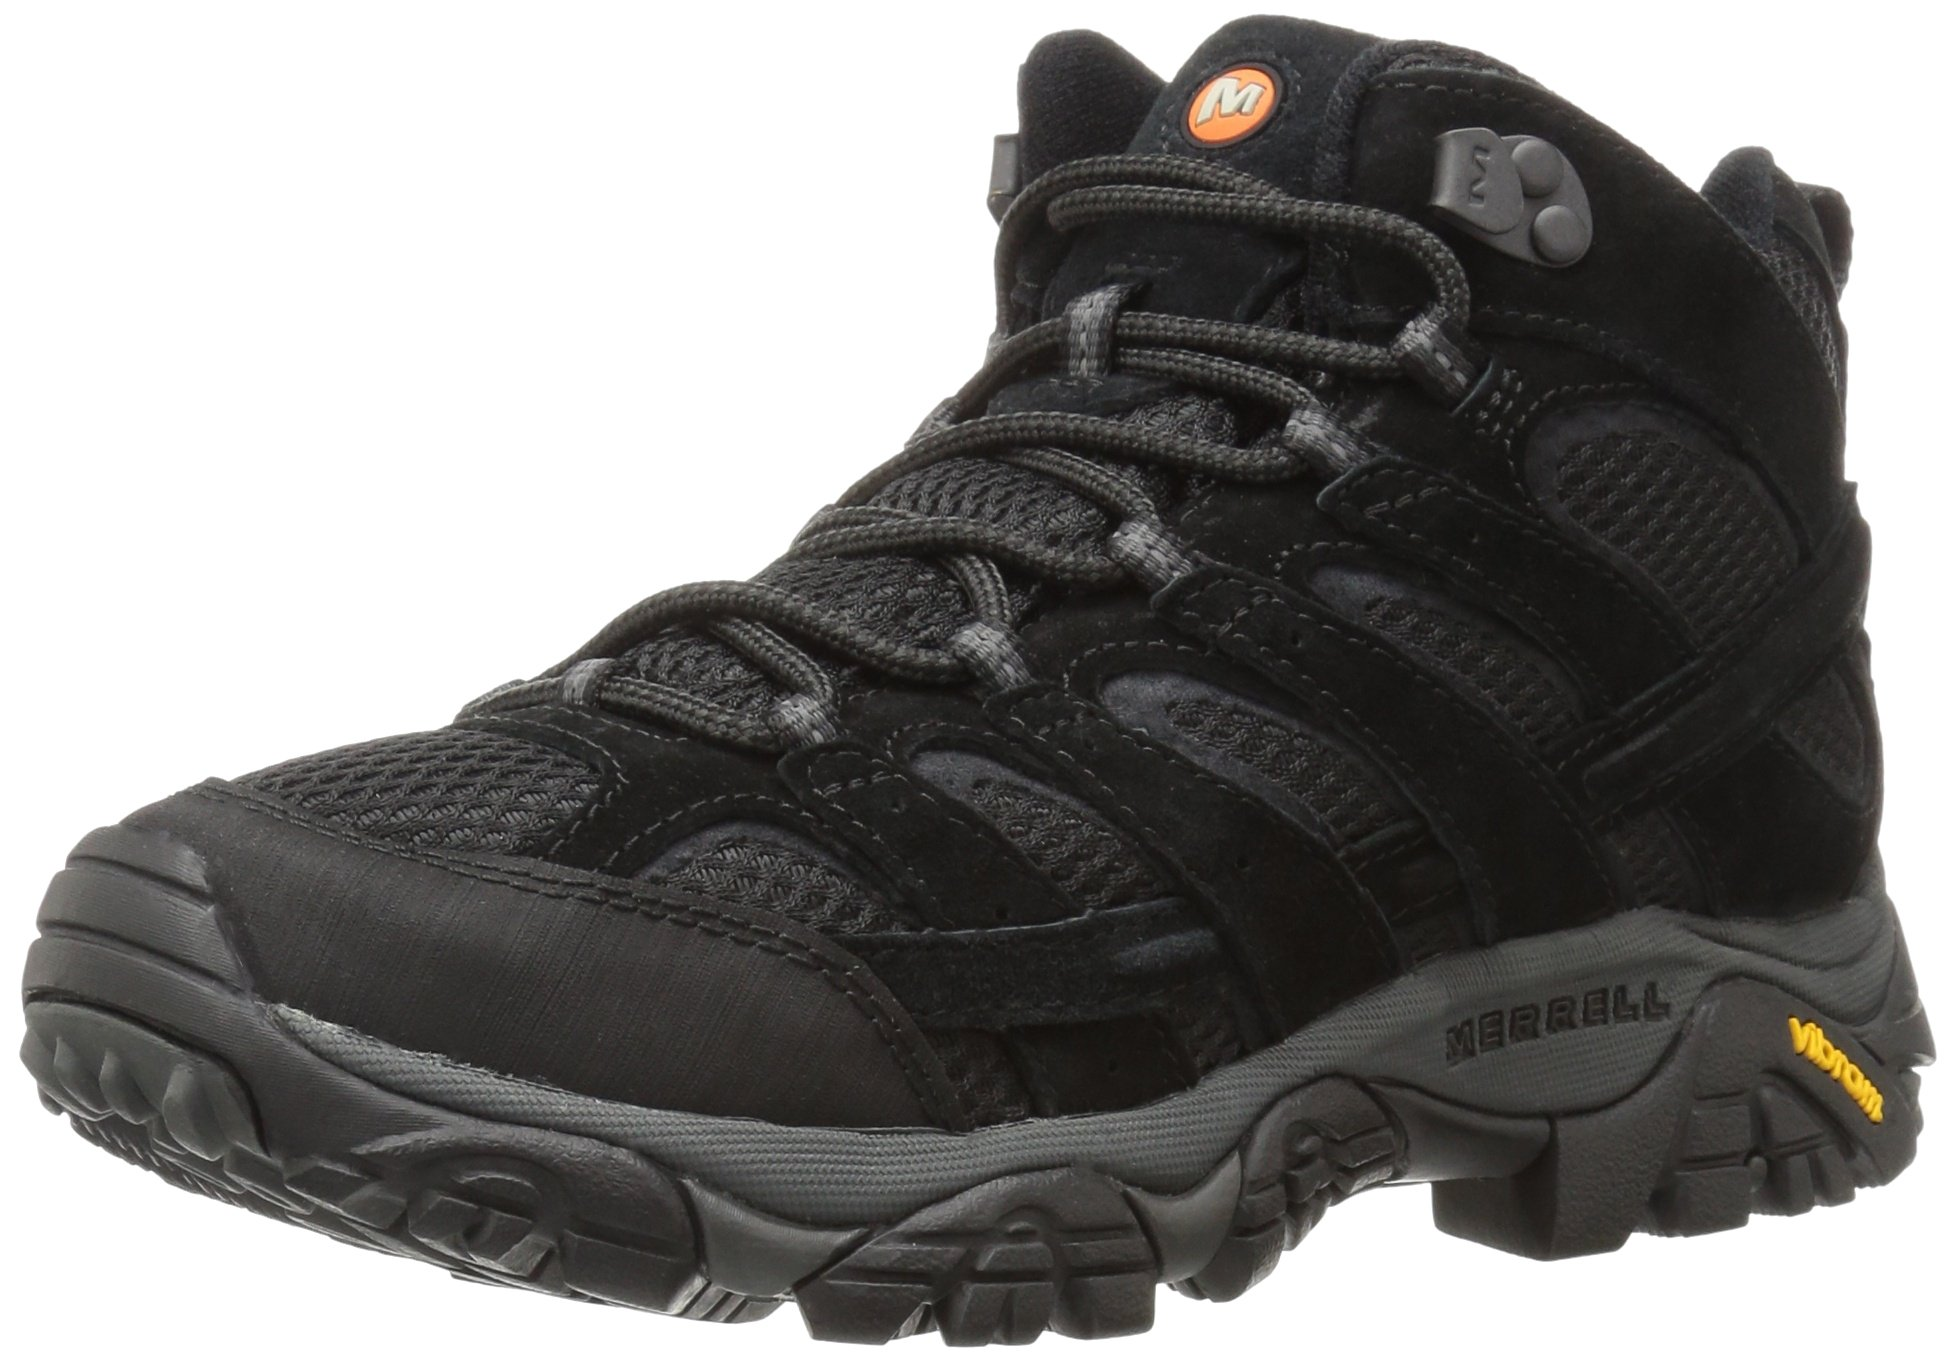 Merrell Men's Moab 2 Vent Mid Hiking Boot, Black Night, 10 M US by Merrell